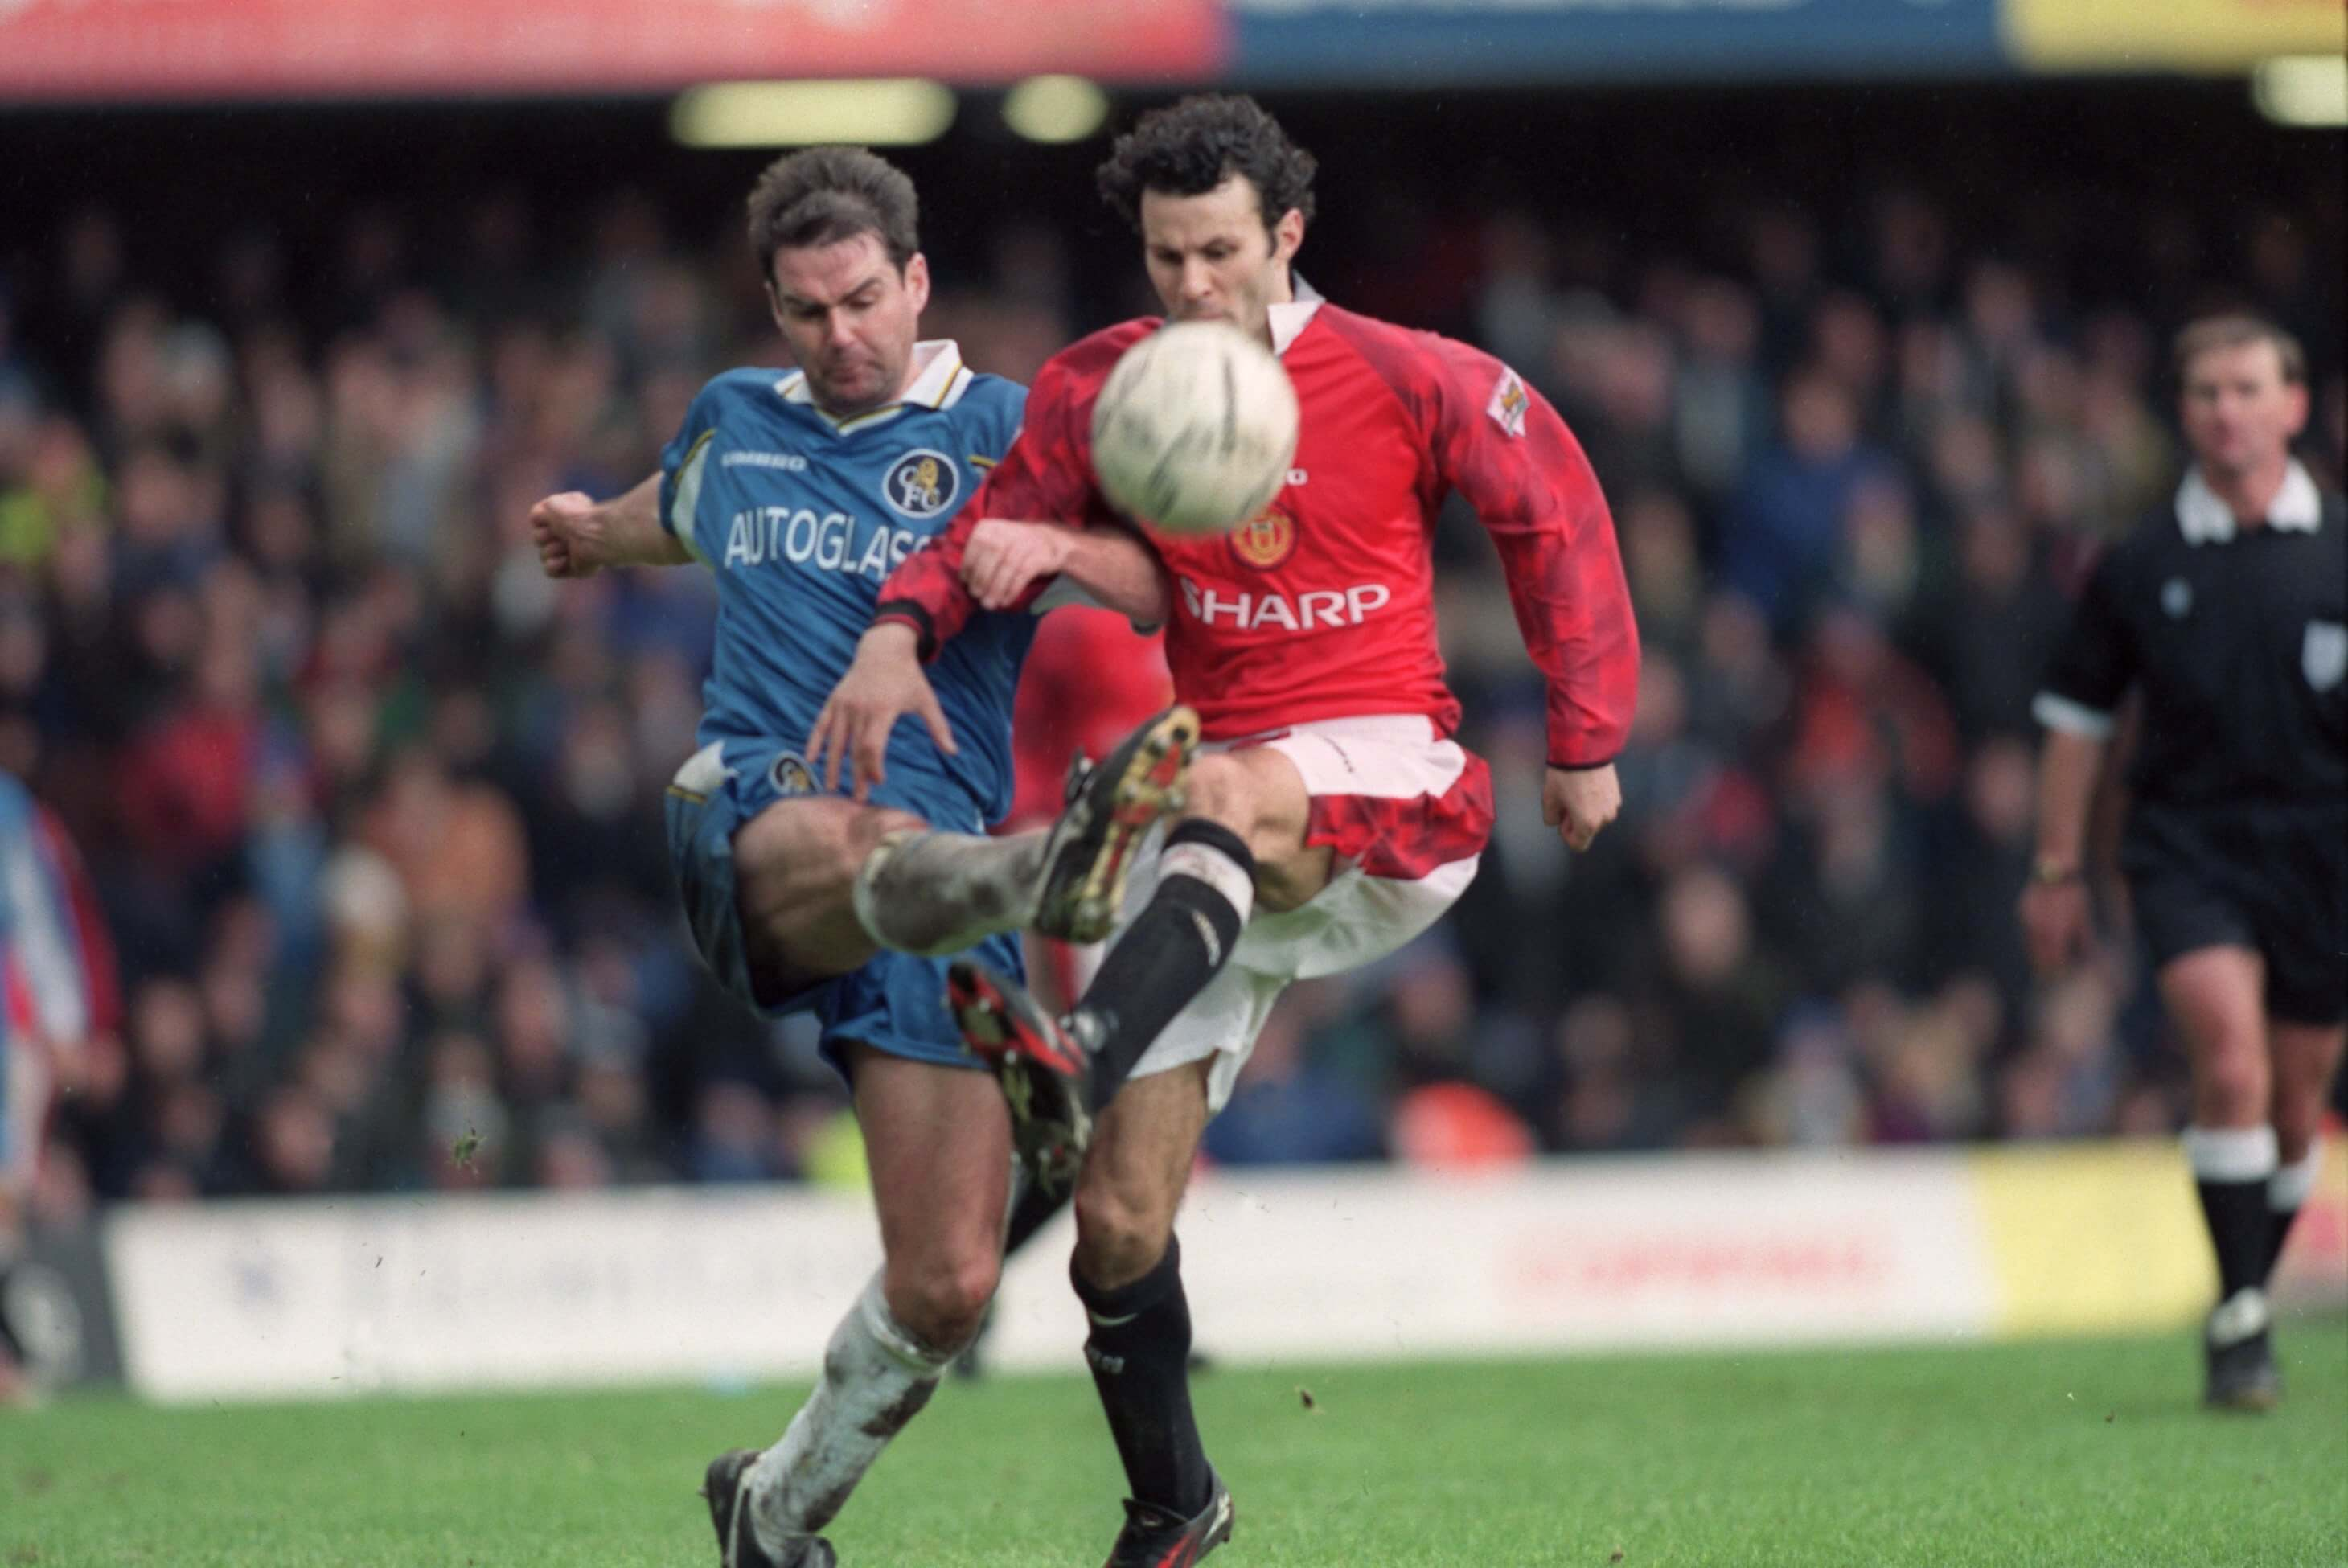 Chelsea v Man Utd: Bridge battle evokes classic memories